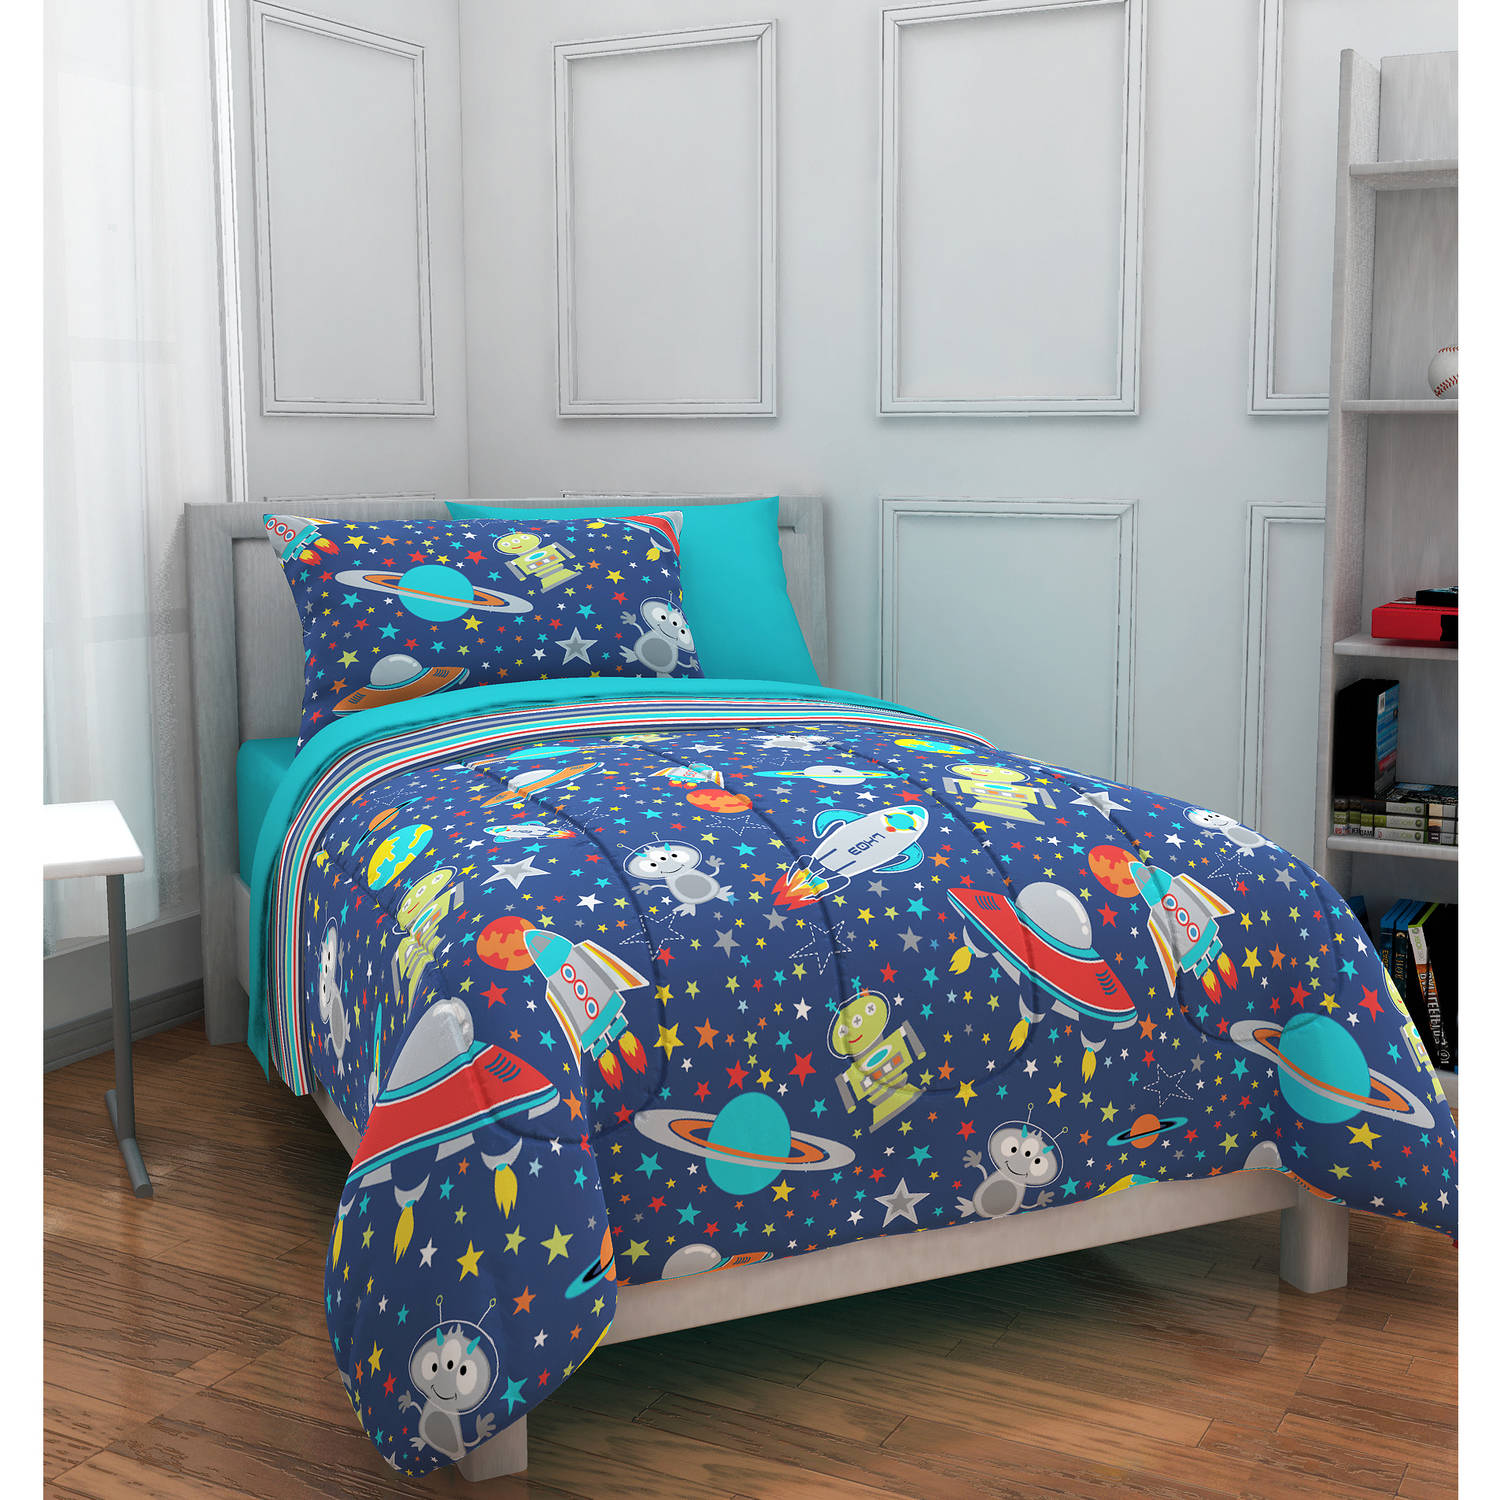 Awesome Mainstays Kids Outer Space Bed In A Bag Bedding Set   Walmart.com